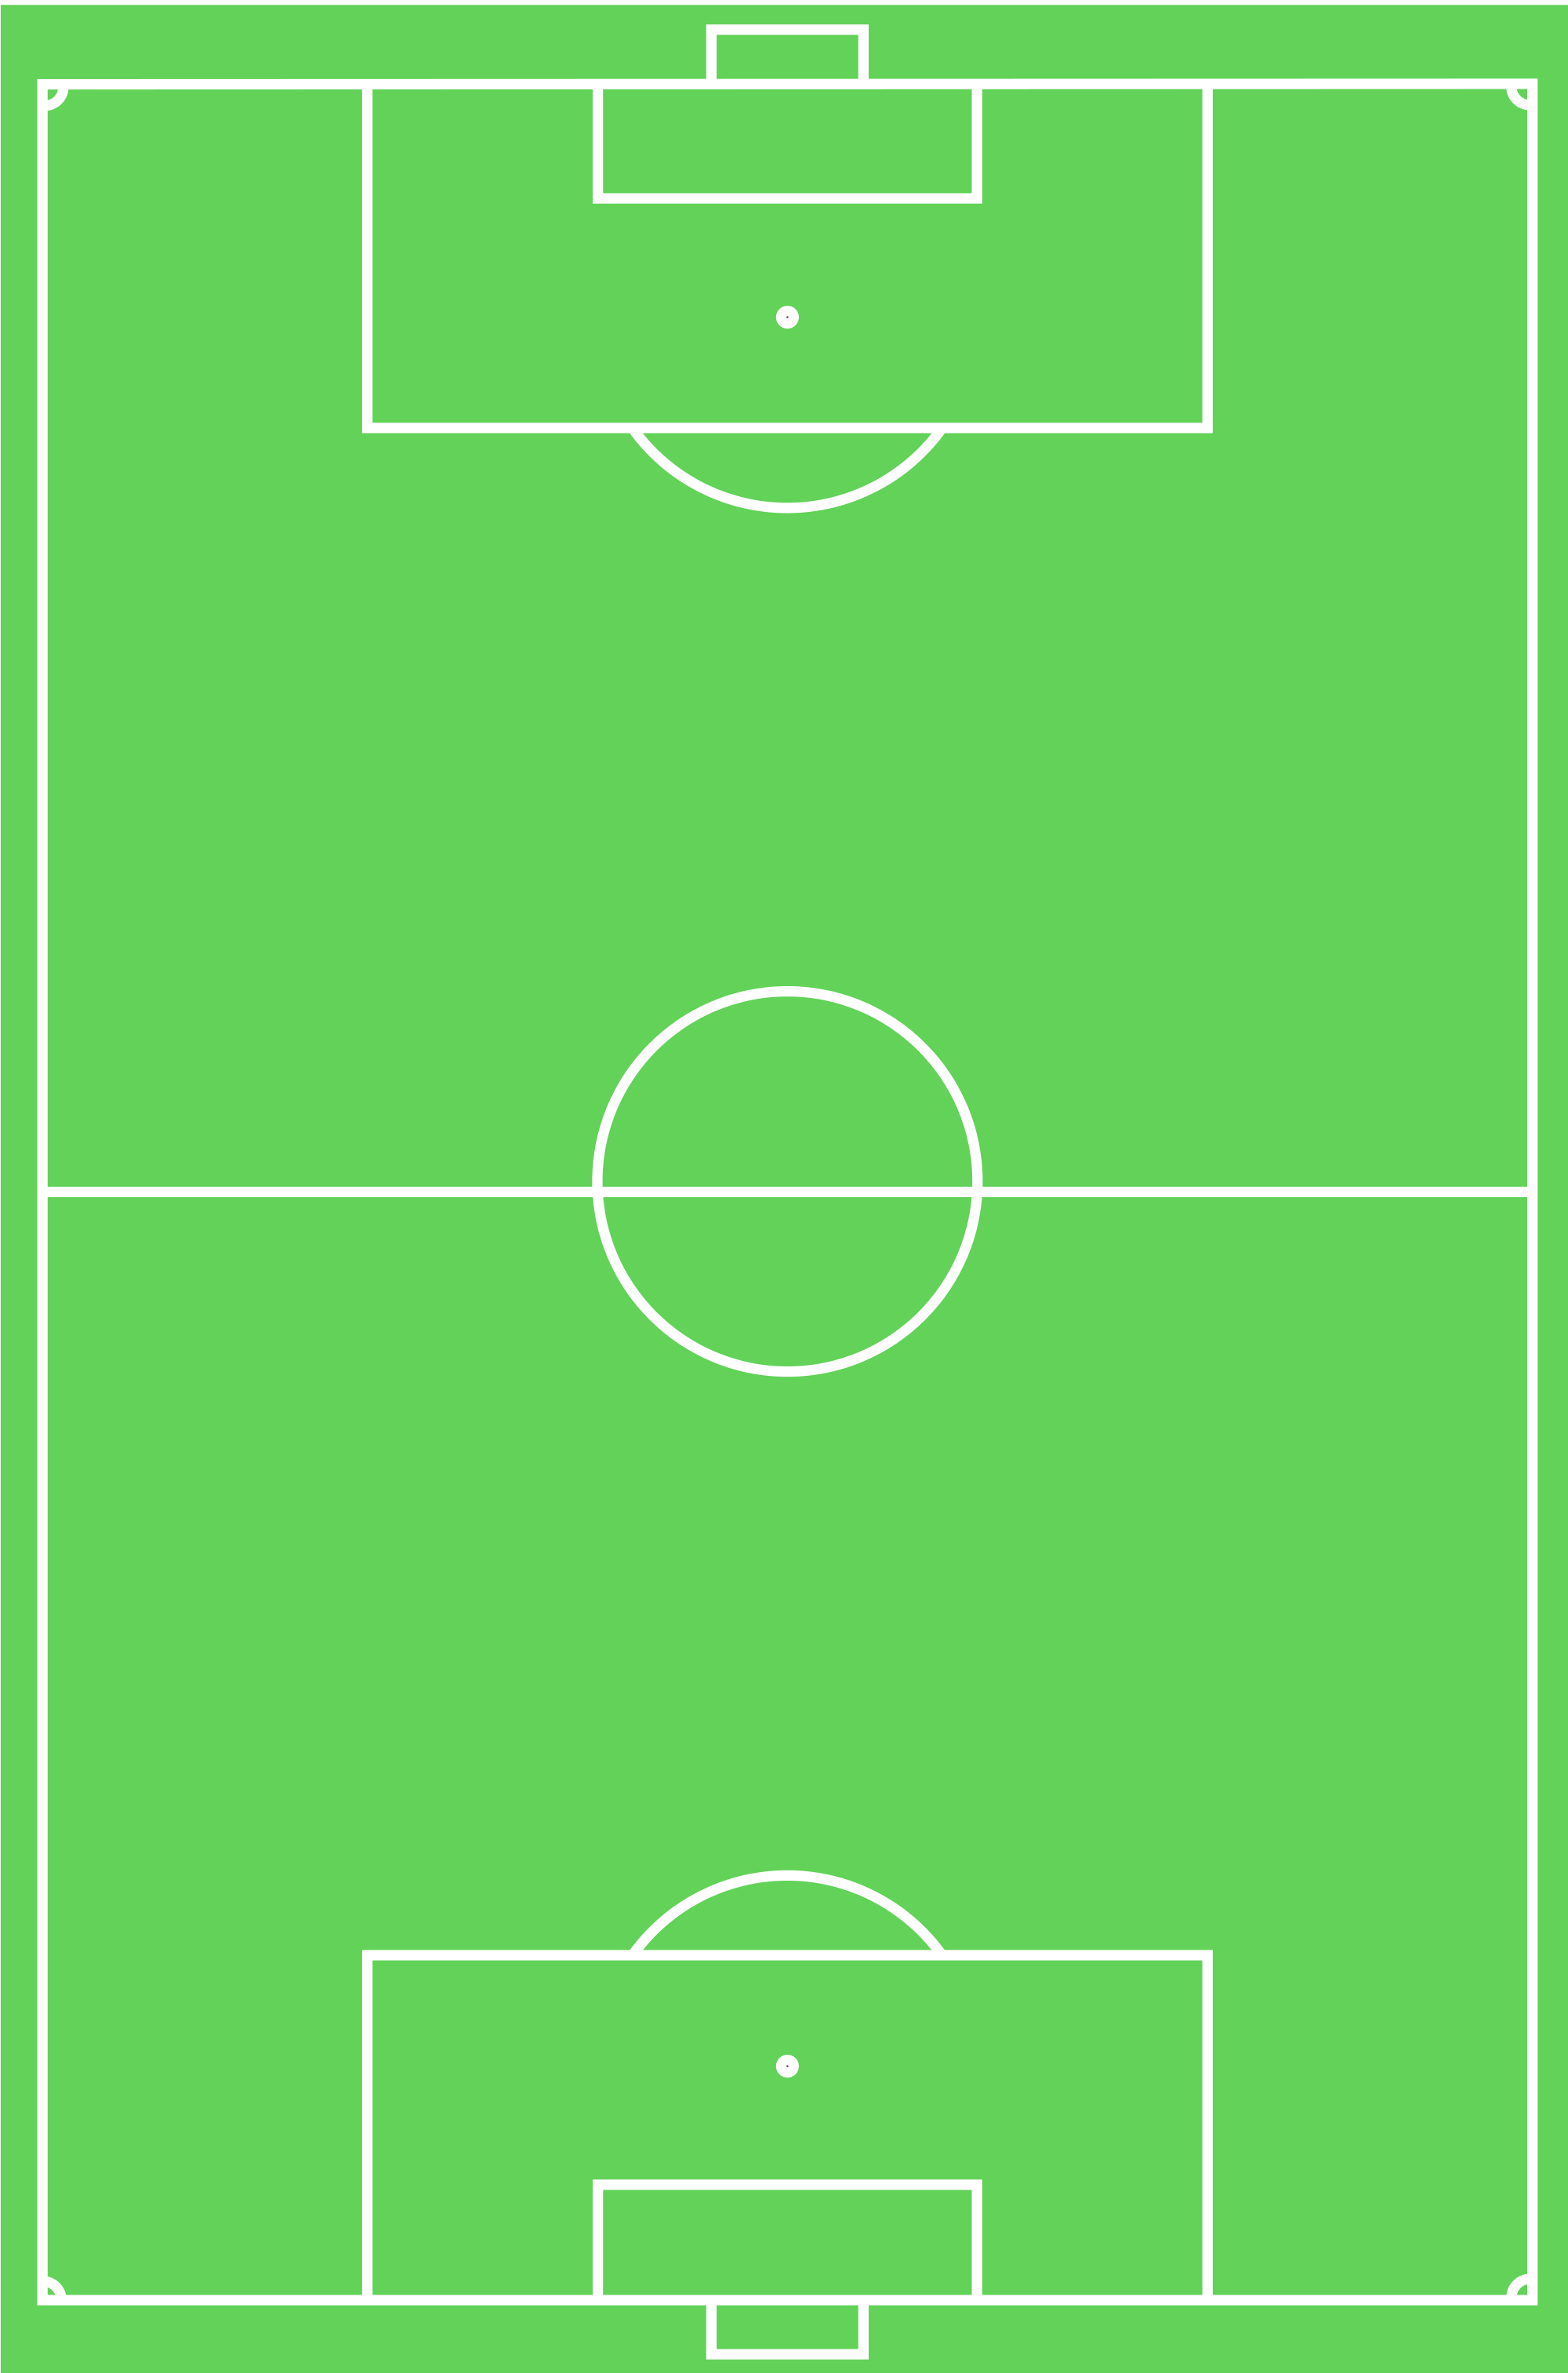 image about Printable Soccer Field Layout titled Football Marketplace Design Suitable Measurement Markings And Cake Upon